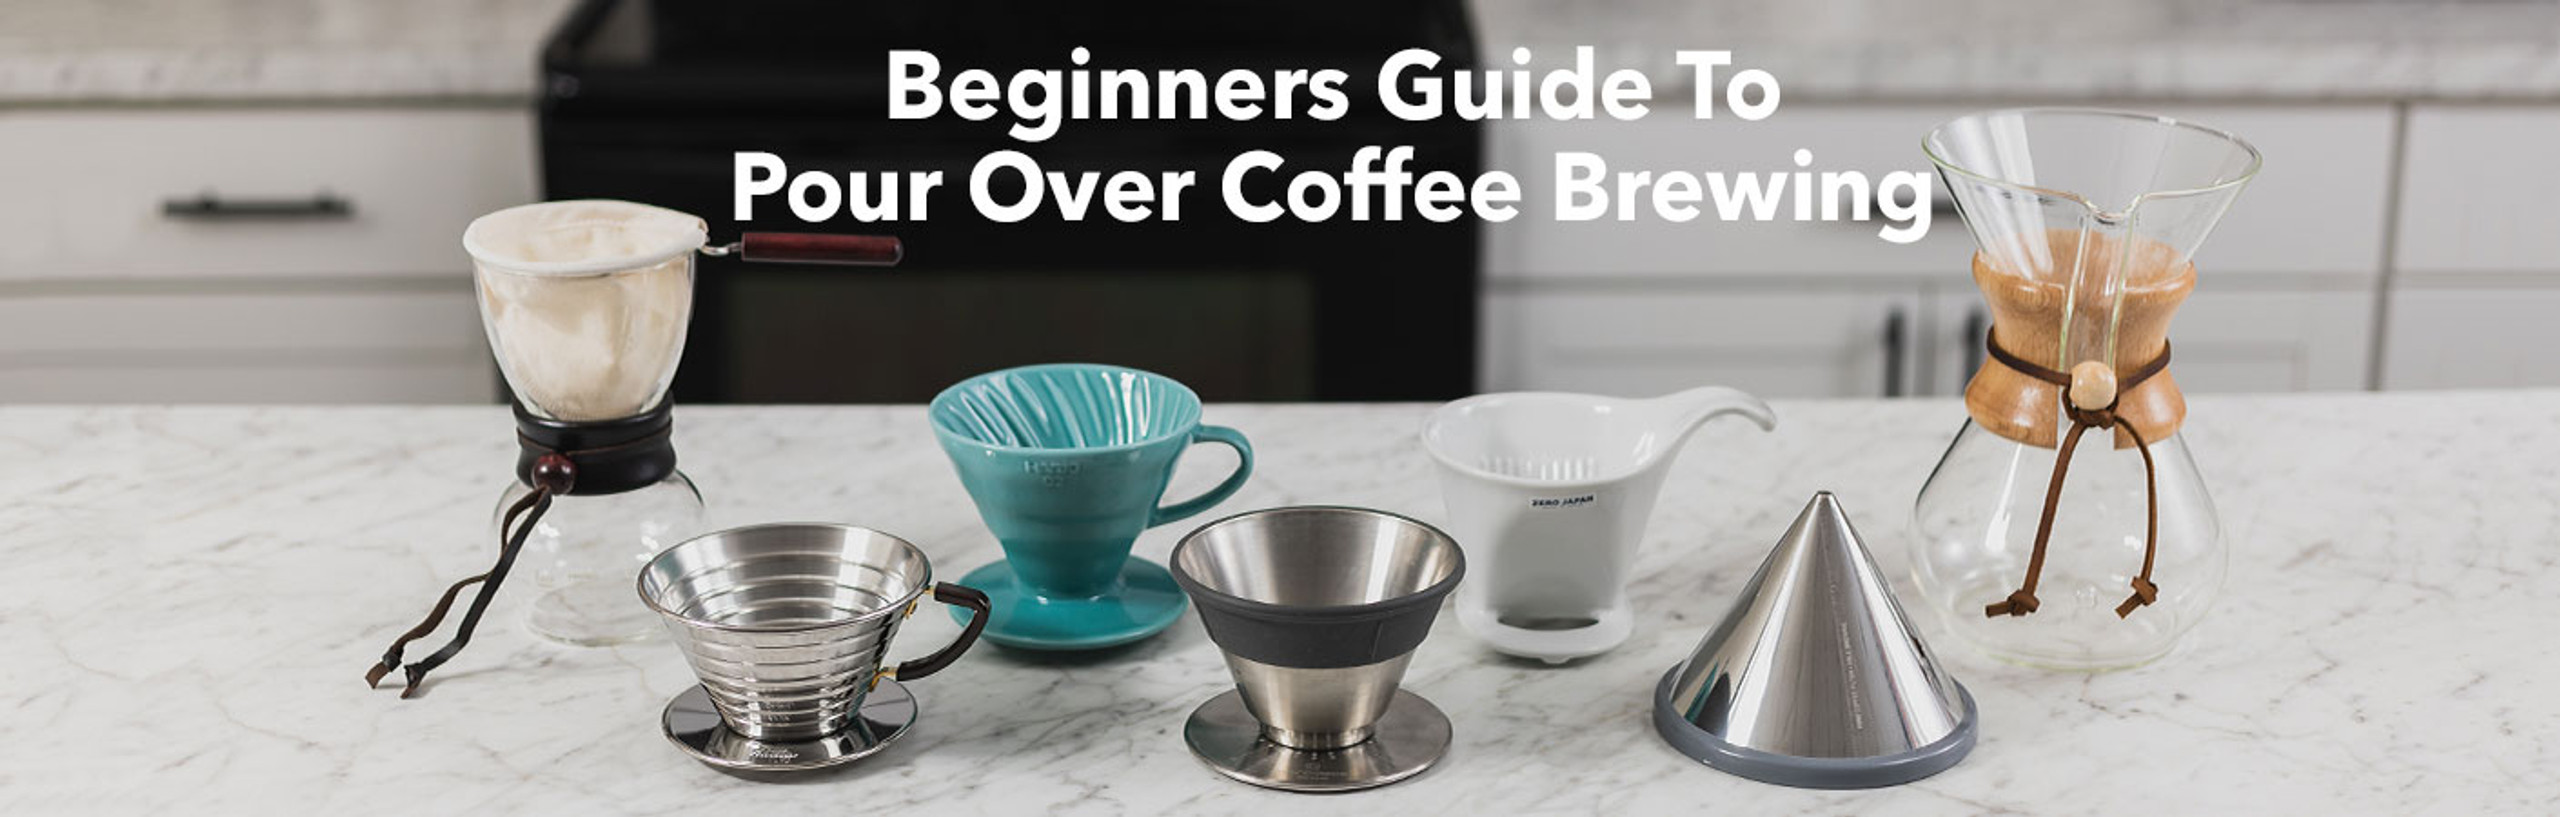 Beginners Guide To Pour Over Coffee Brewing